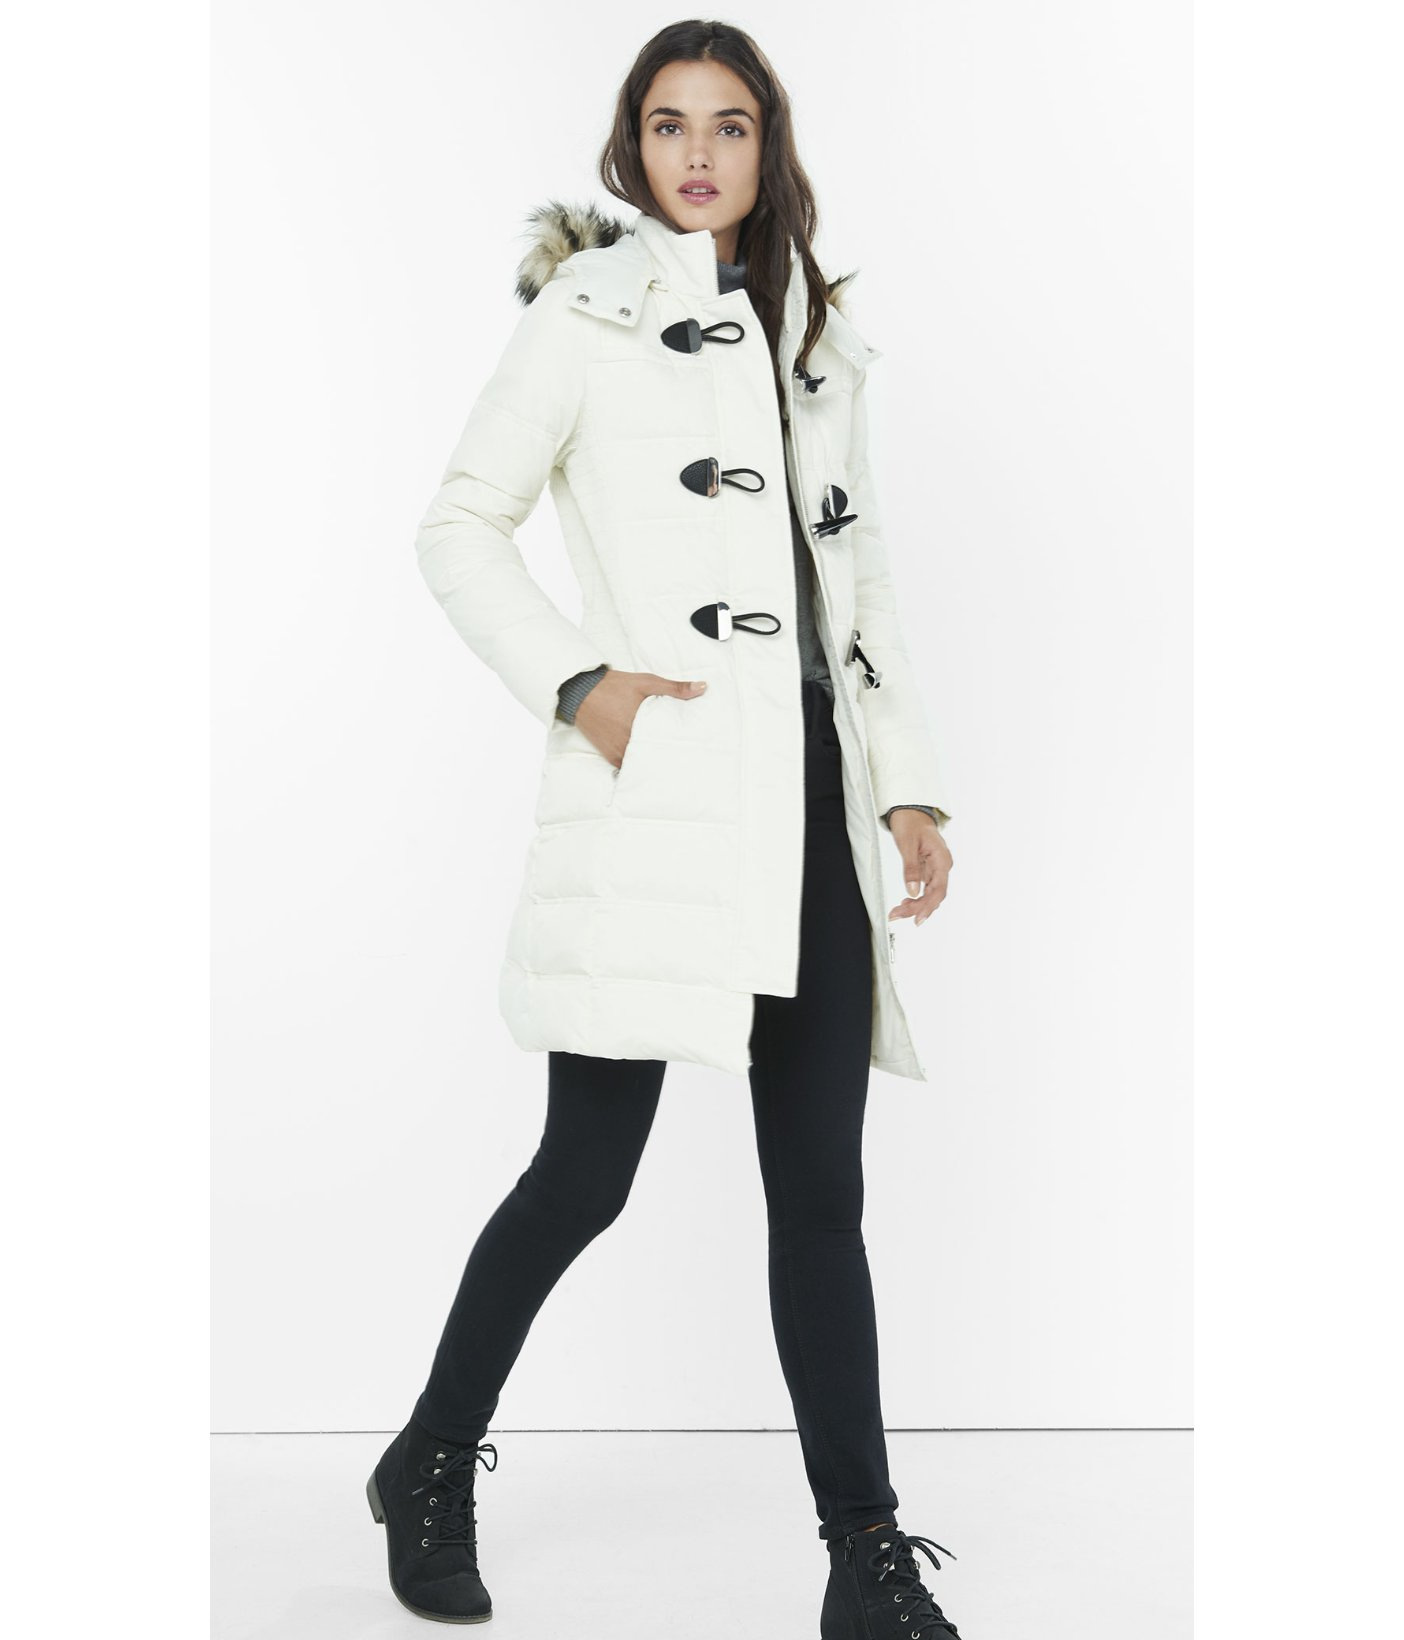 Shop a full selection of coats, trenches & dusters plus get fashion tips from FP Me stylists worldwide! Buy now and get free shipping – see site for details.